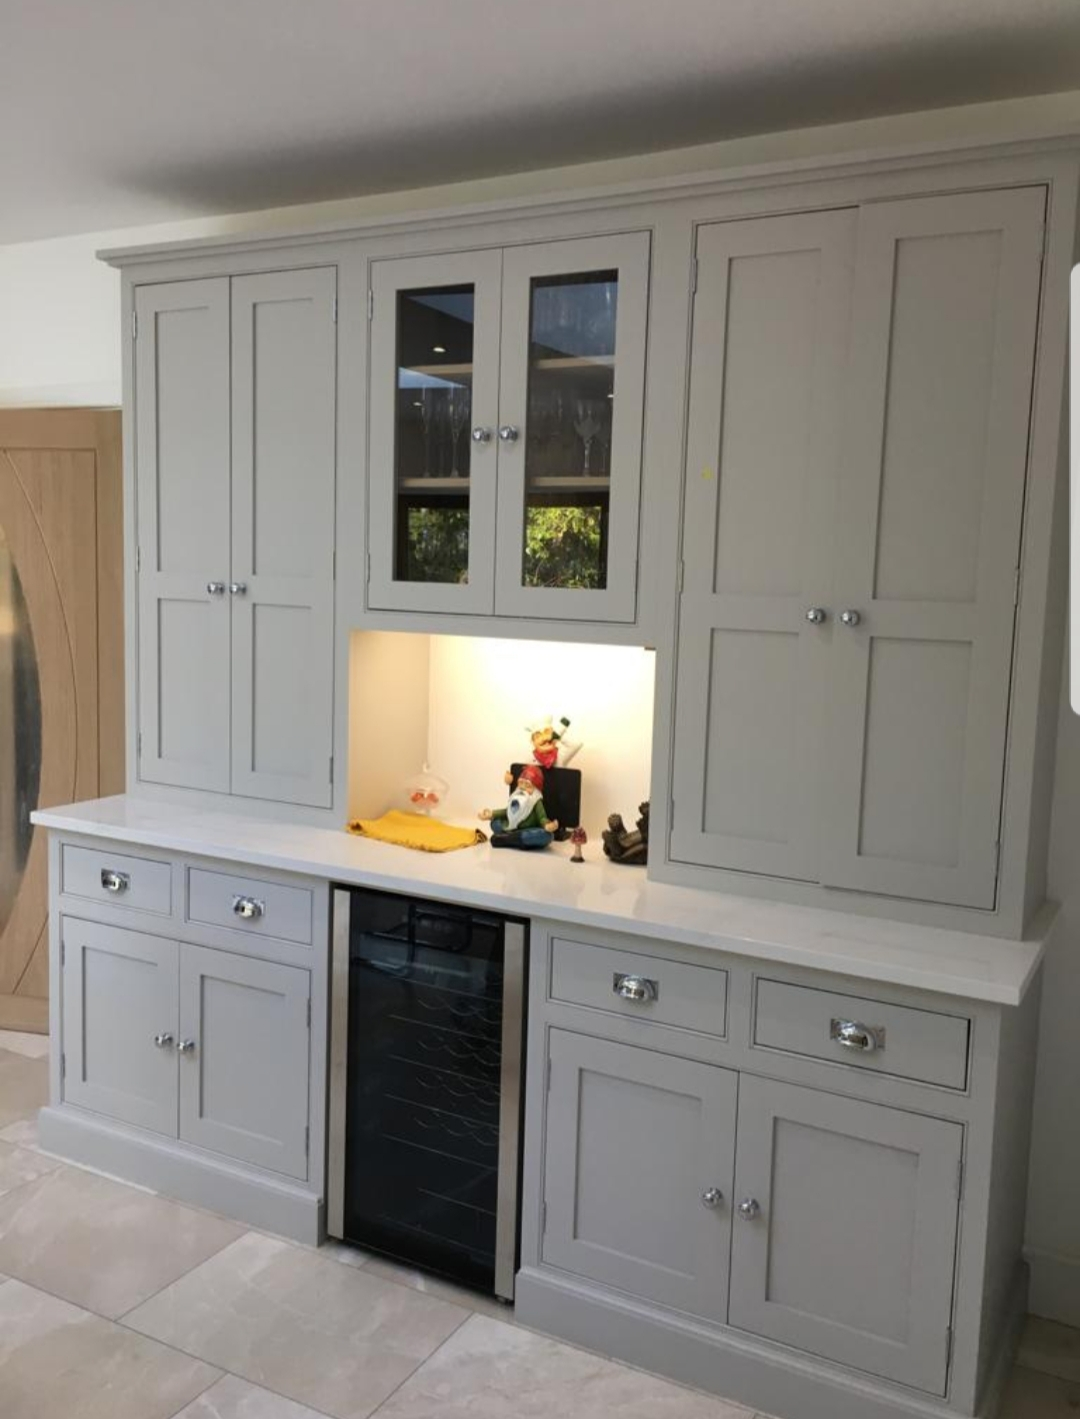 Kitchen painter Surrey, hand painted kitchen Surrey, kitchen cabinet painter London